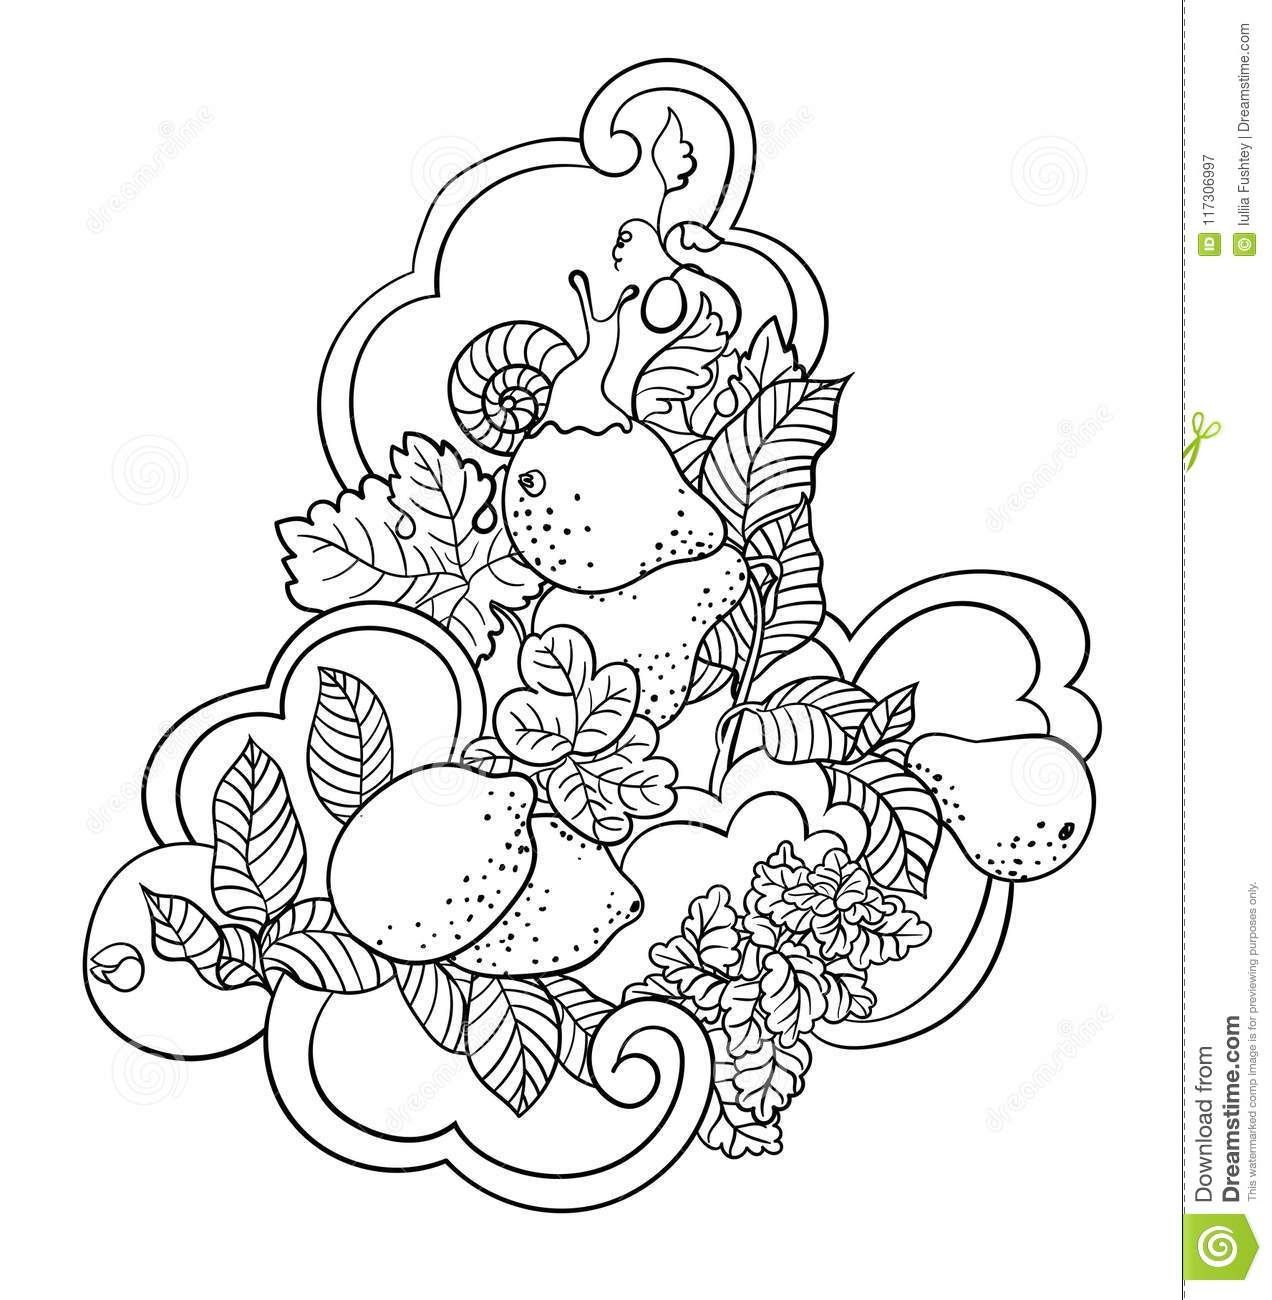 Coloring pages with fruits and abstract waves for children and a